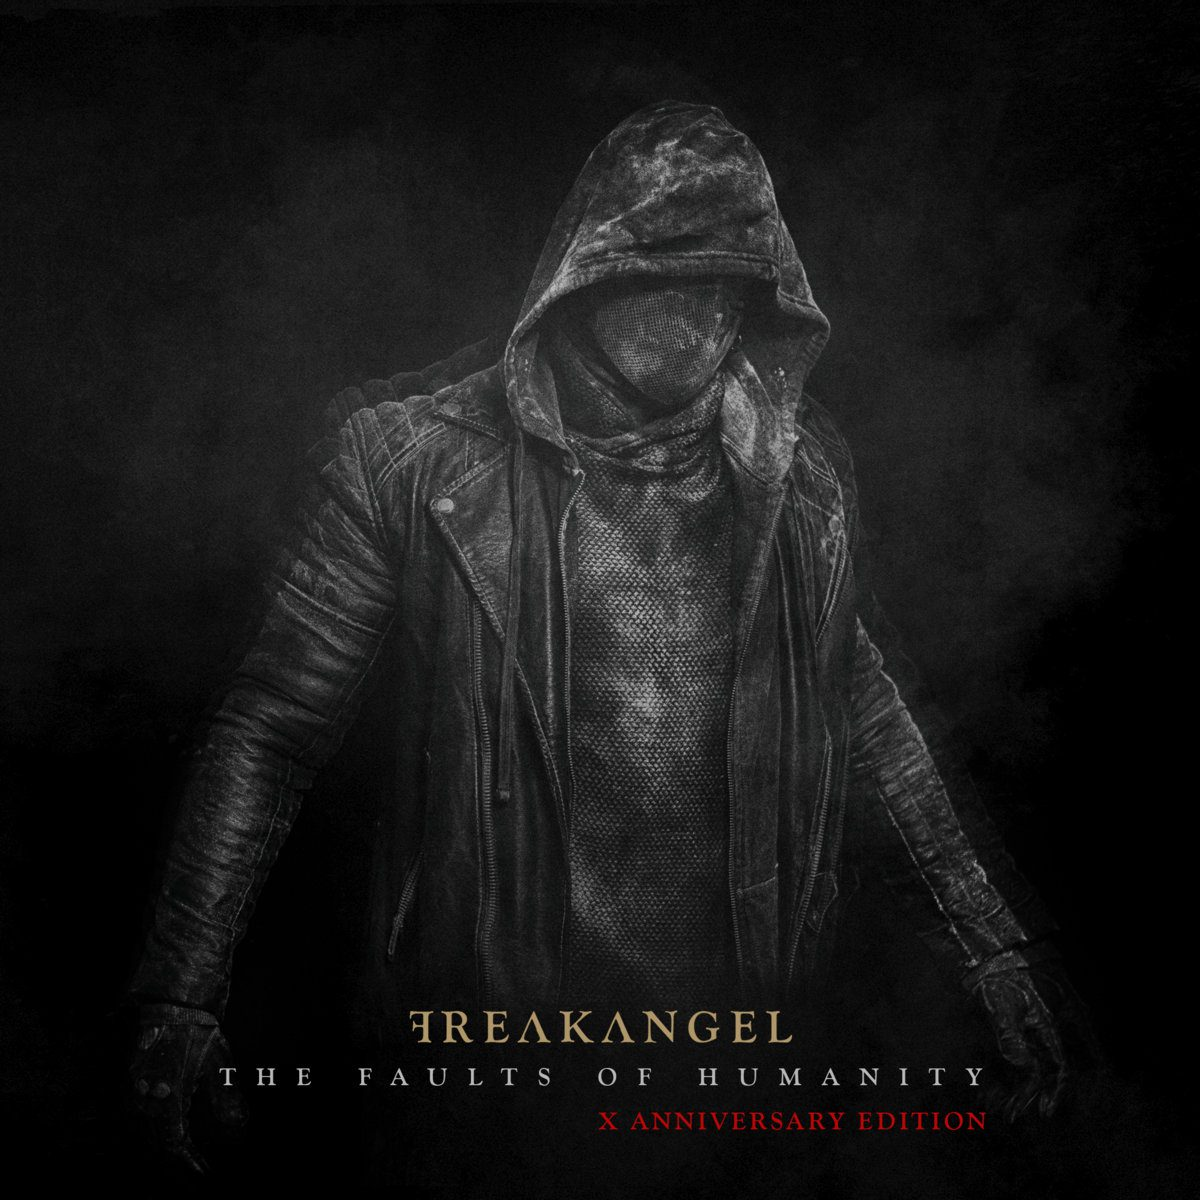 Freakangel re-records 5 tracks from debut album on 10th anniversary EP 'The Faults Of Humanity (X anniversary edition)'